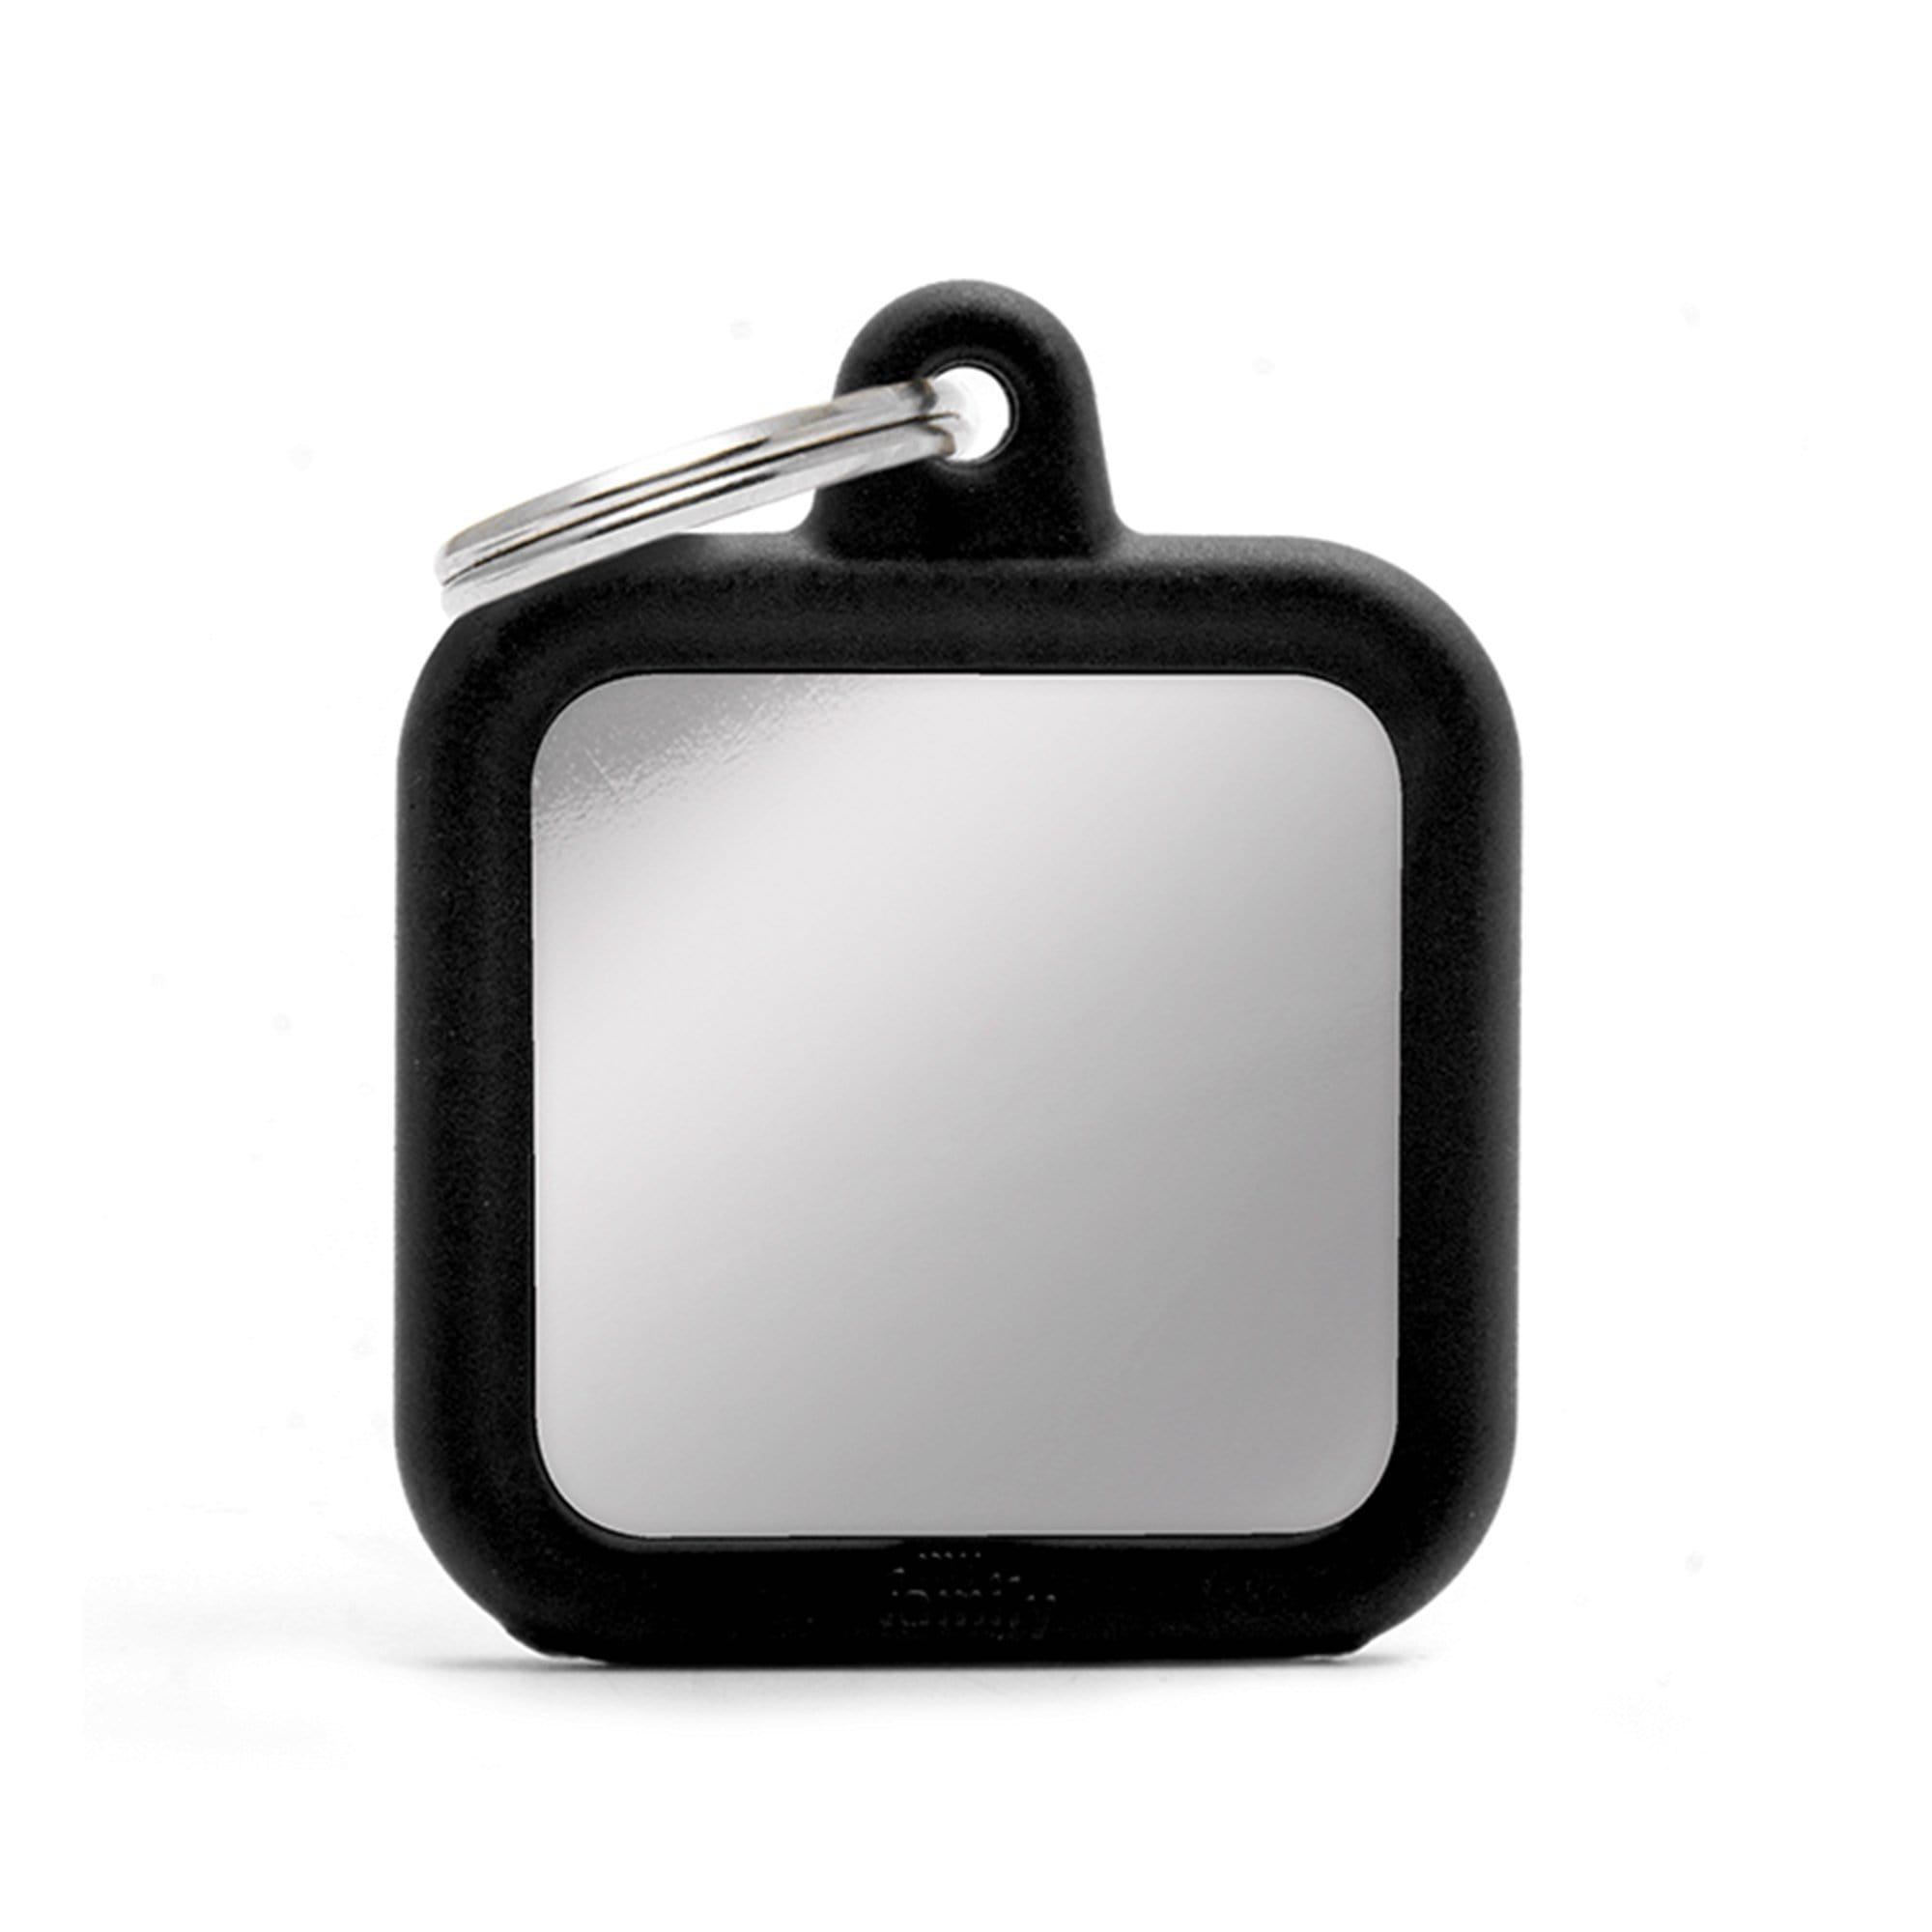 My Family Chromed Black Square With Rubber Dog I.D. Tags 3F3B